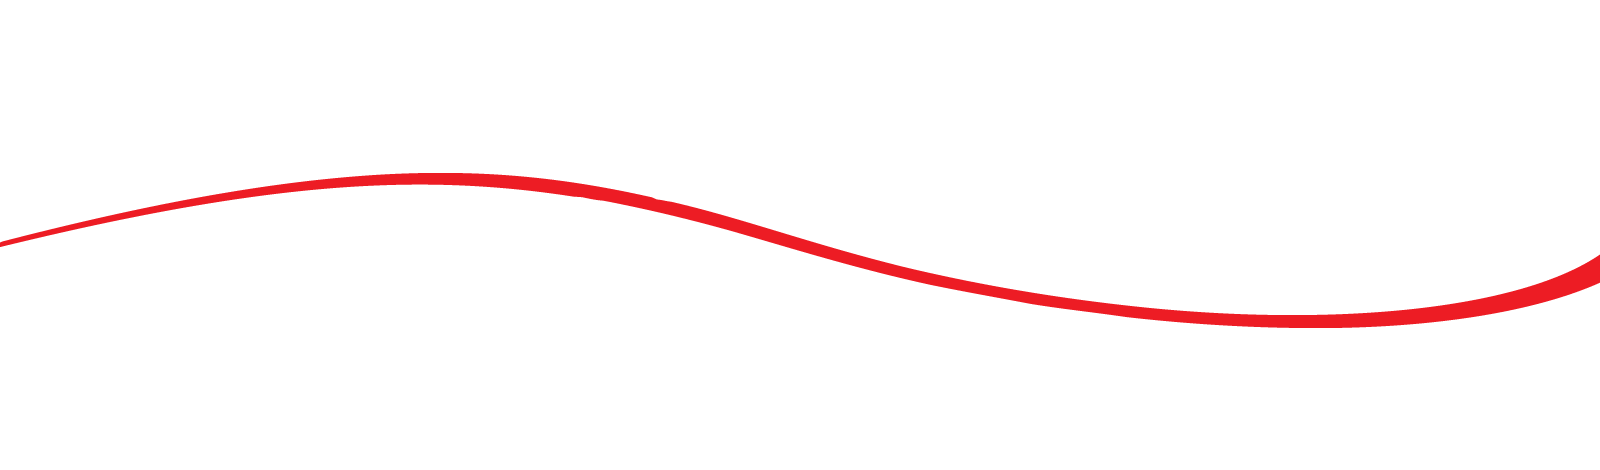 Image result for red line